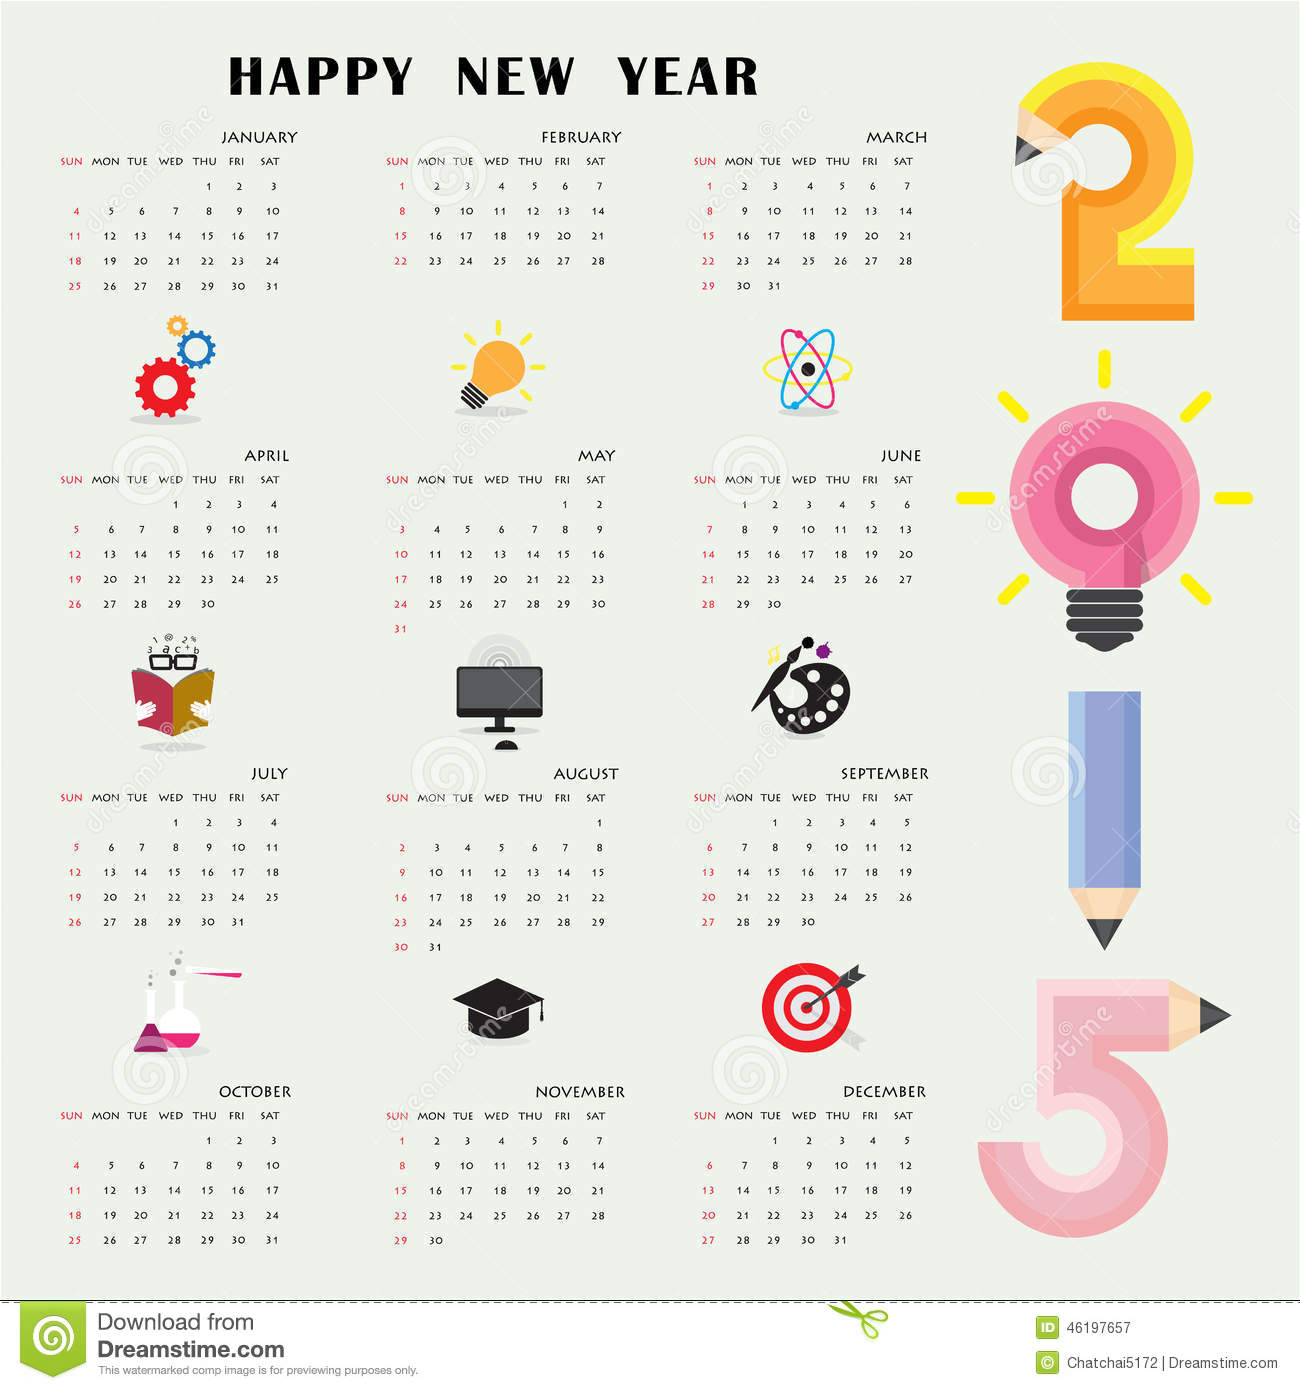 Creative Calendar Design Template 2015 : Creative calendar design template with business or